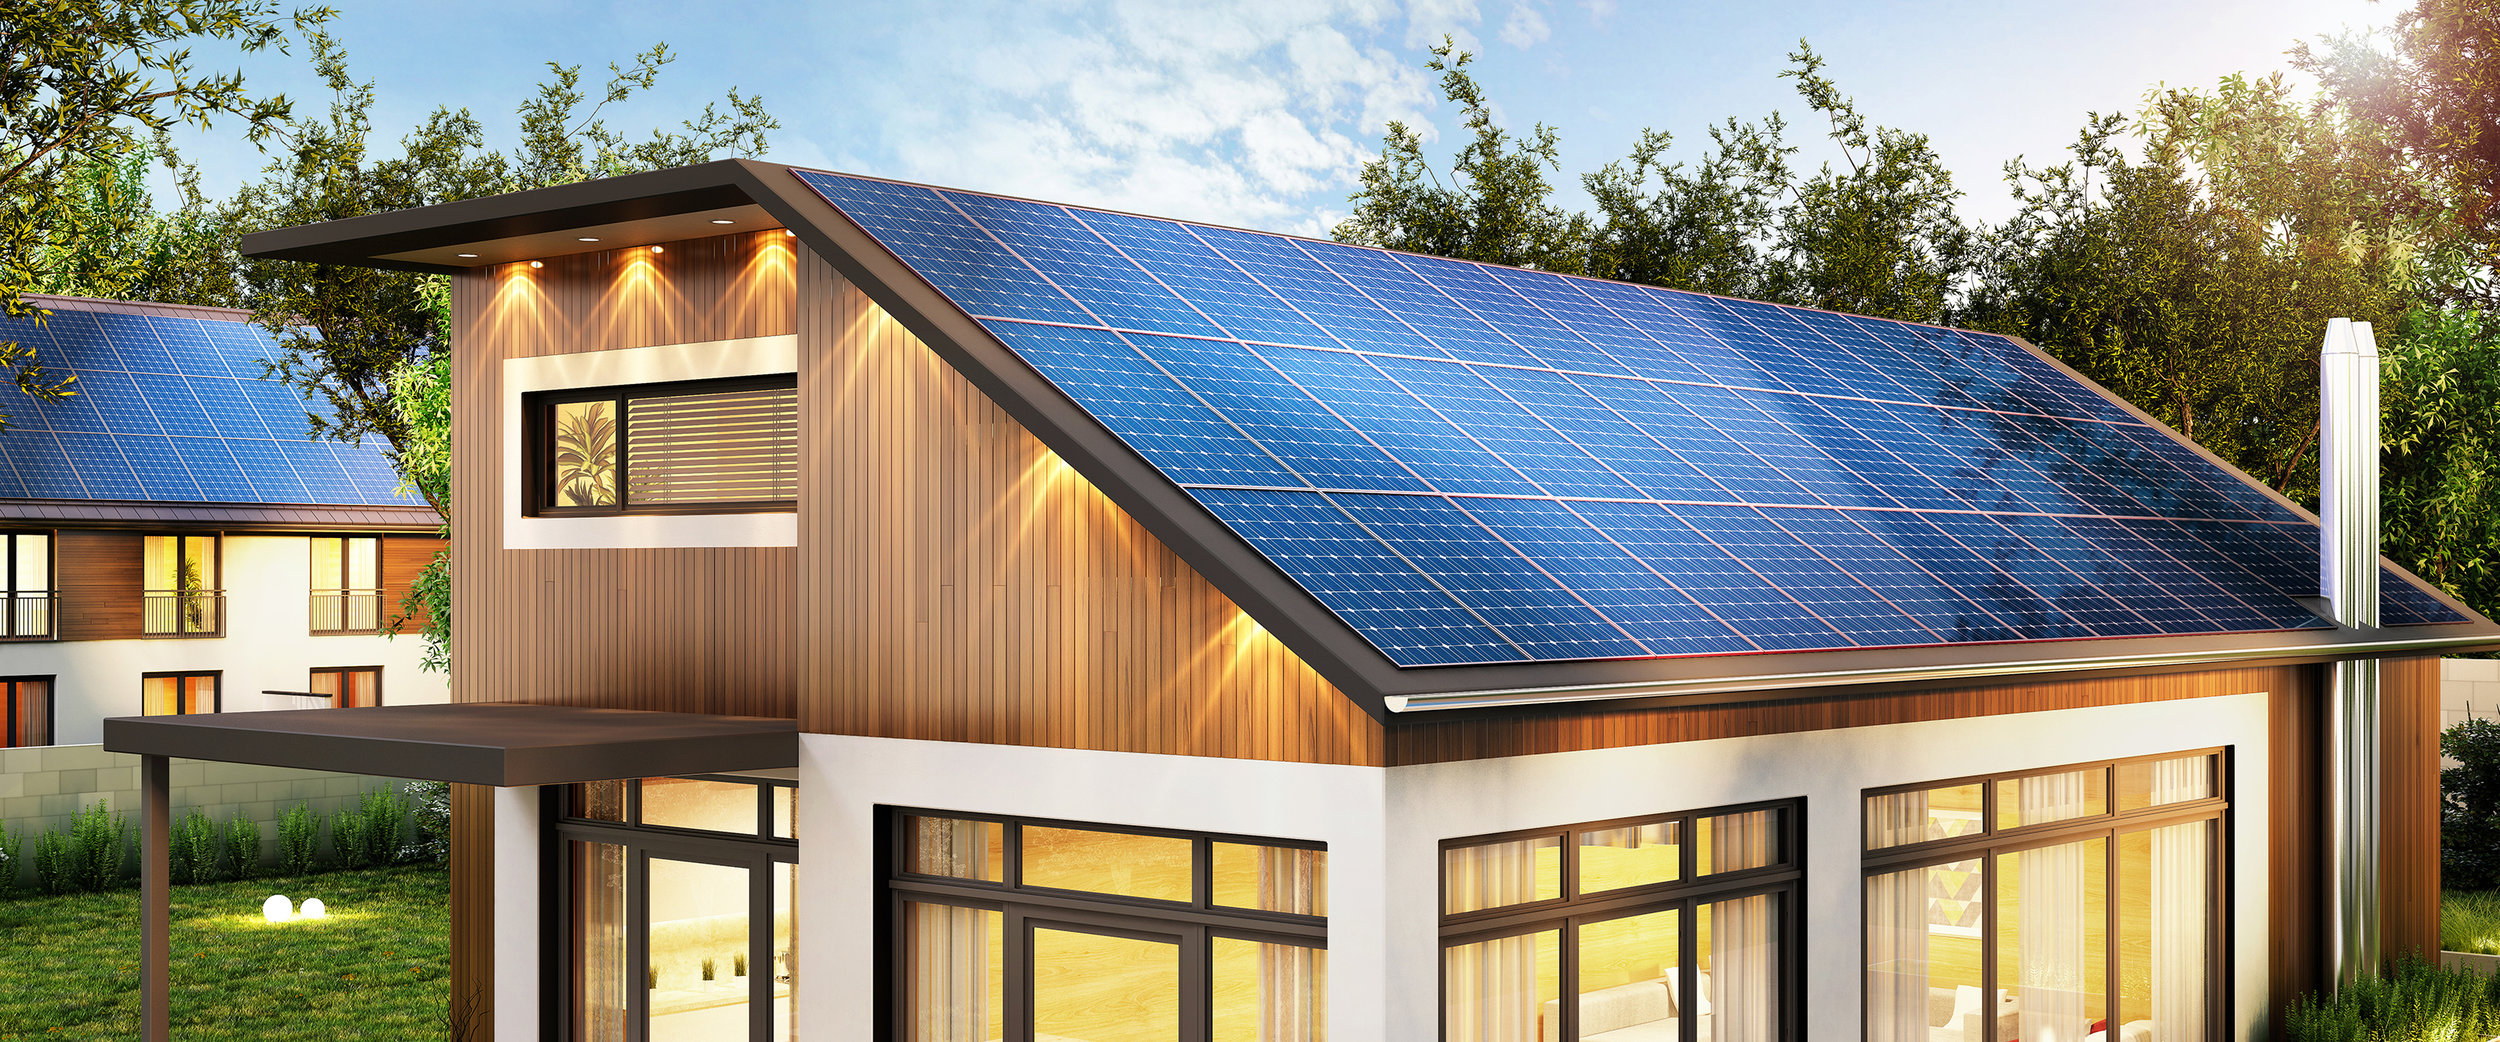 Go Solar with Envirosolar Power